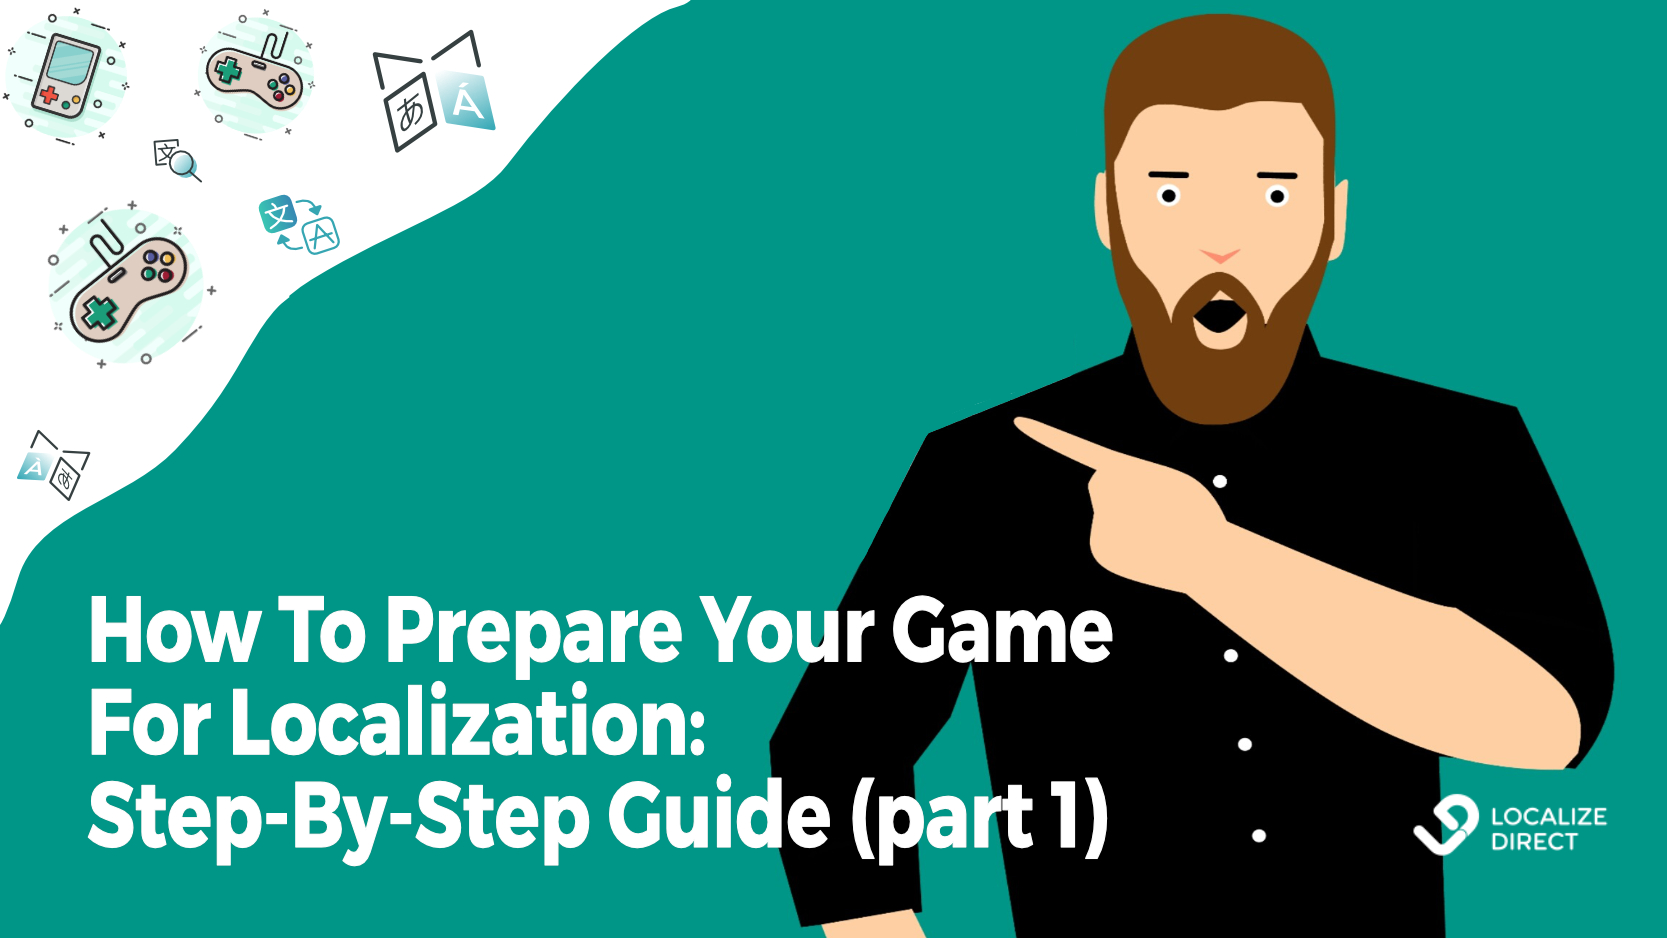 How To Prepare Your Game For Localization: Step-By-Step Guide (part 1)